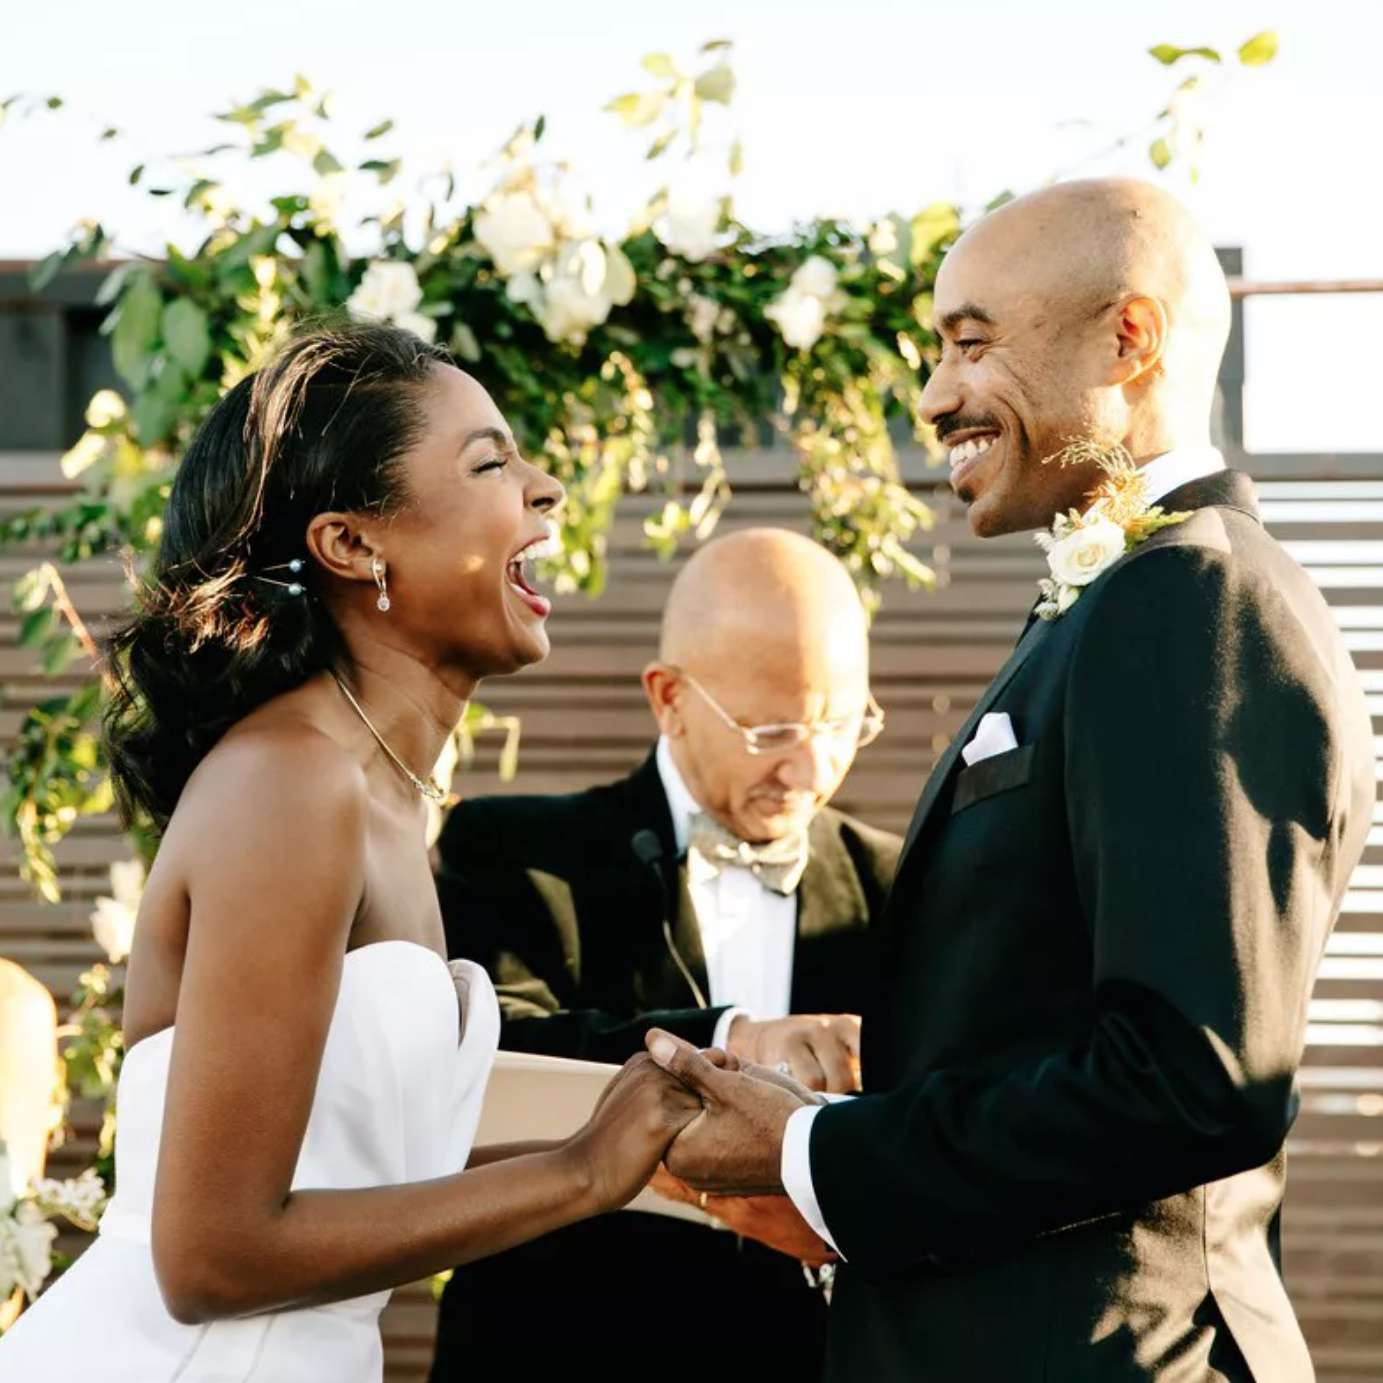 Newlyweds laughing during vow exchange